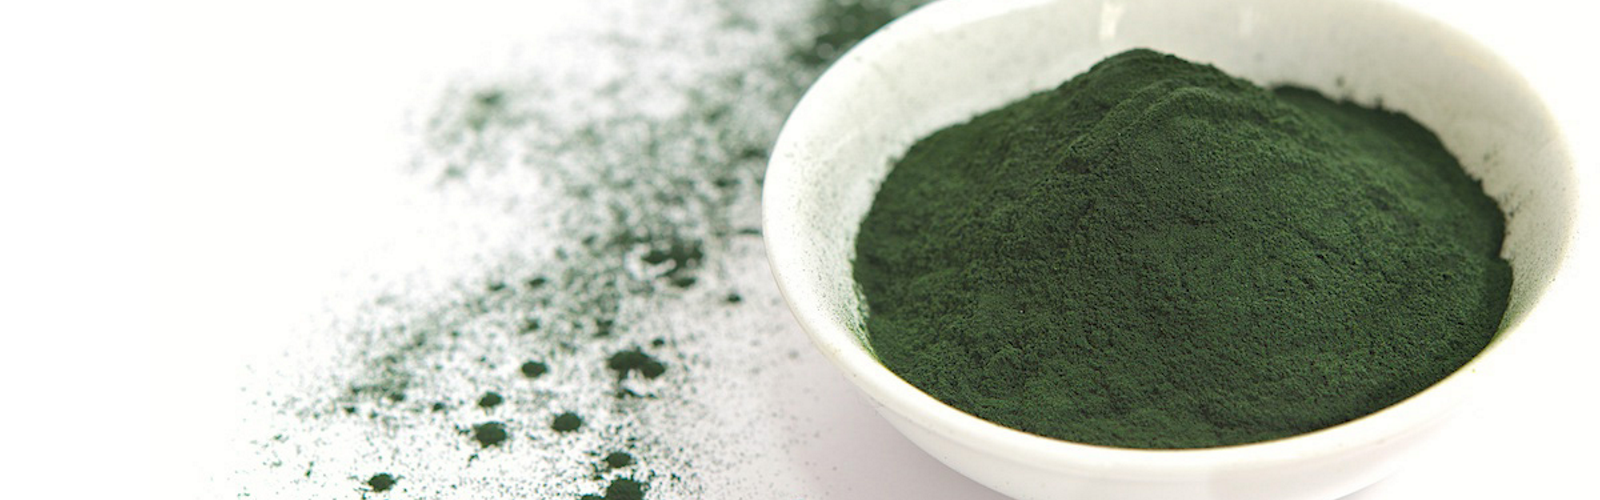 Benefits of Chlorella and Chlorella Powder